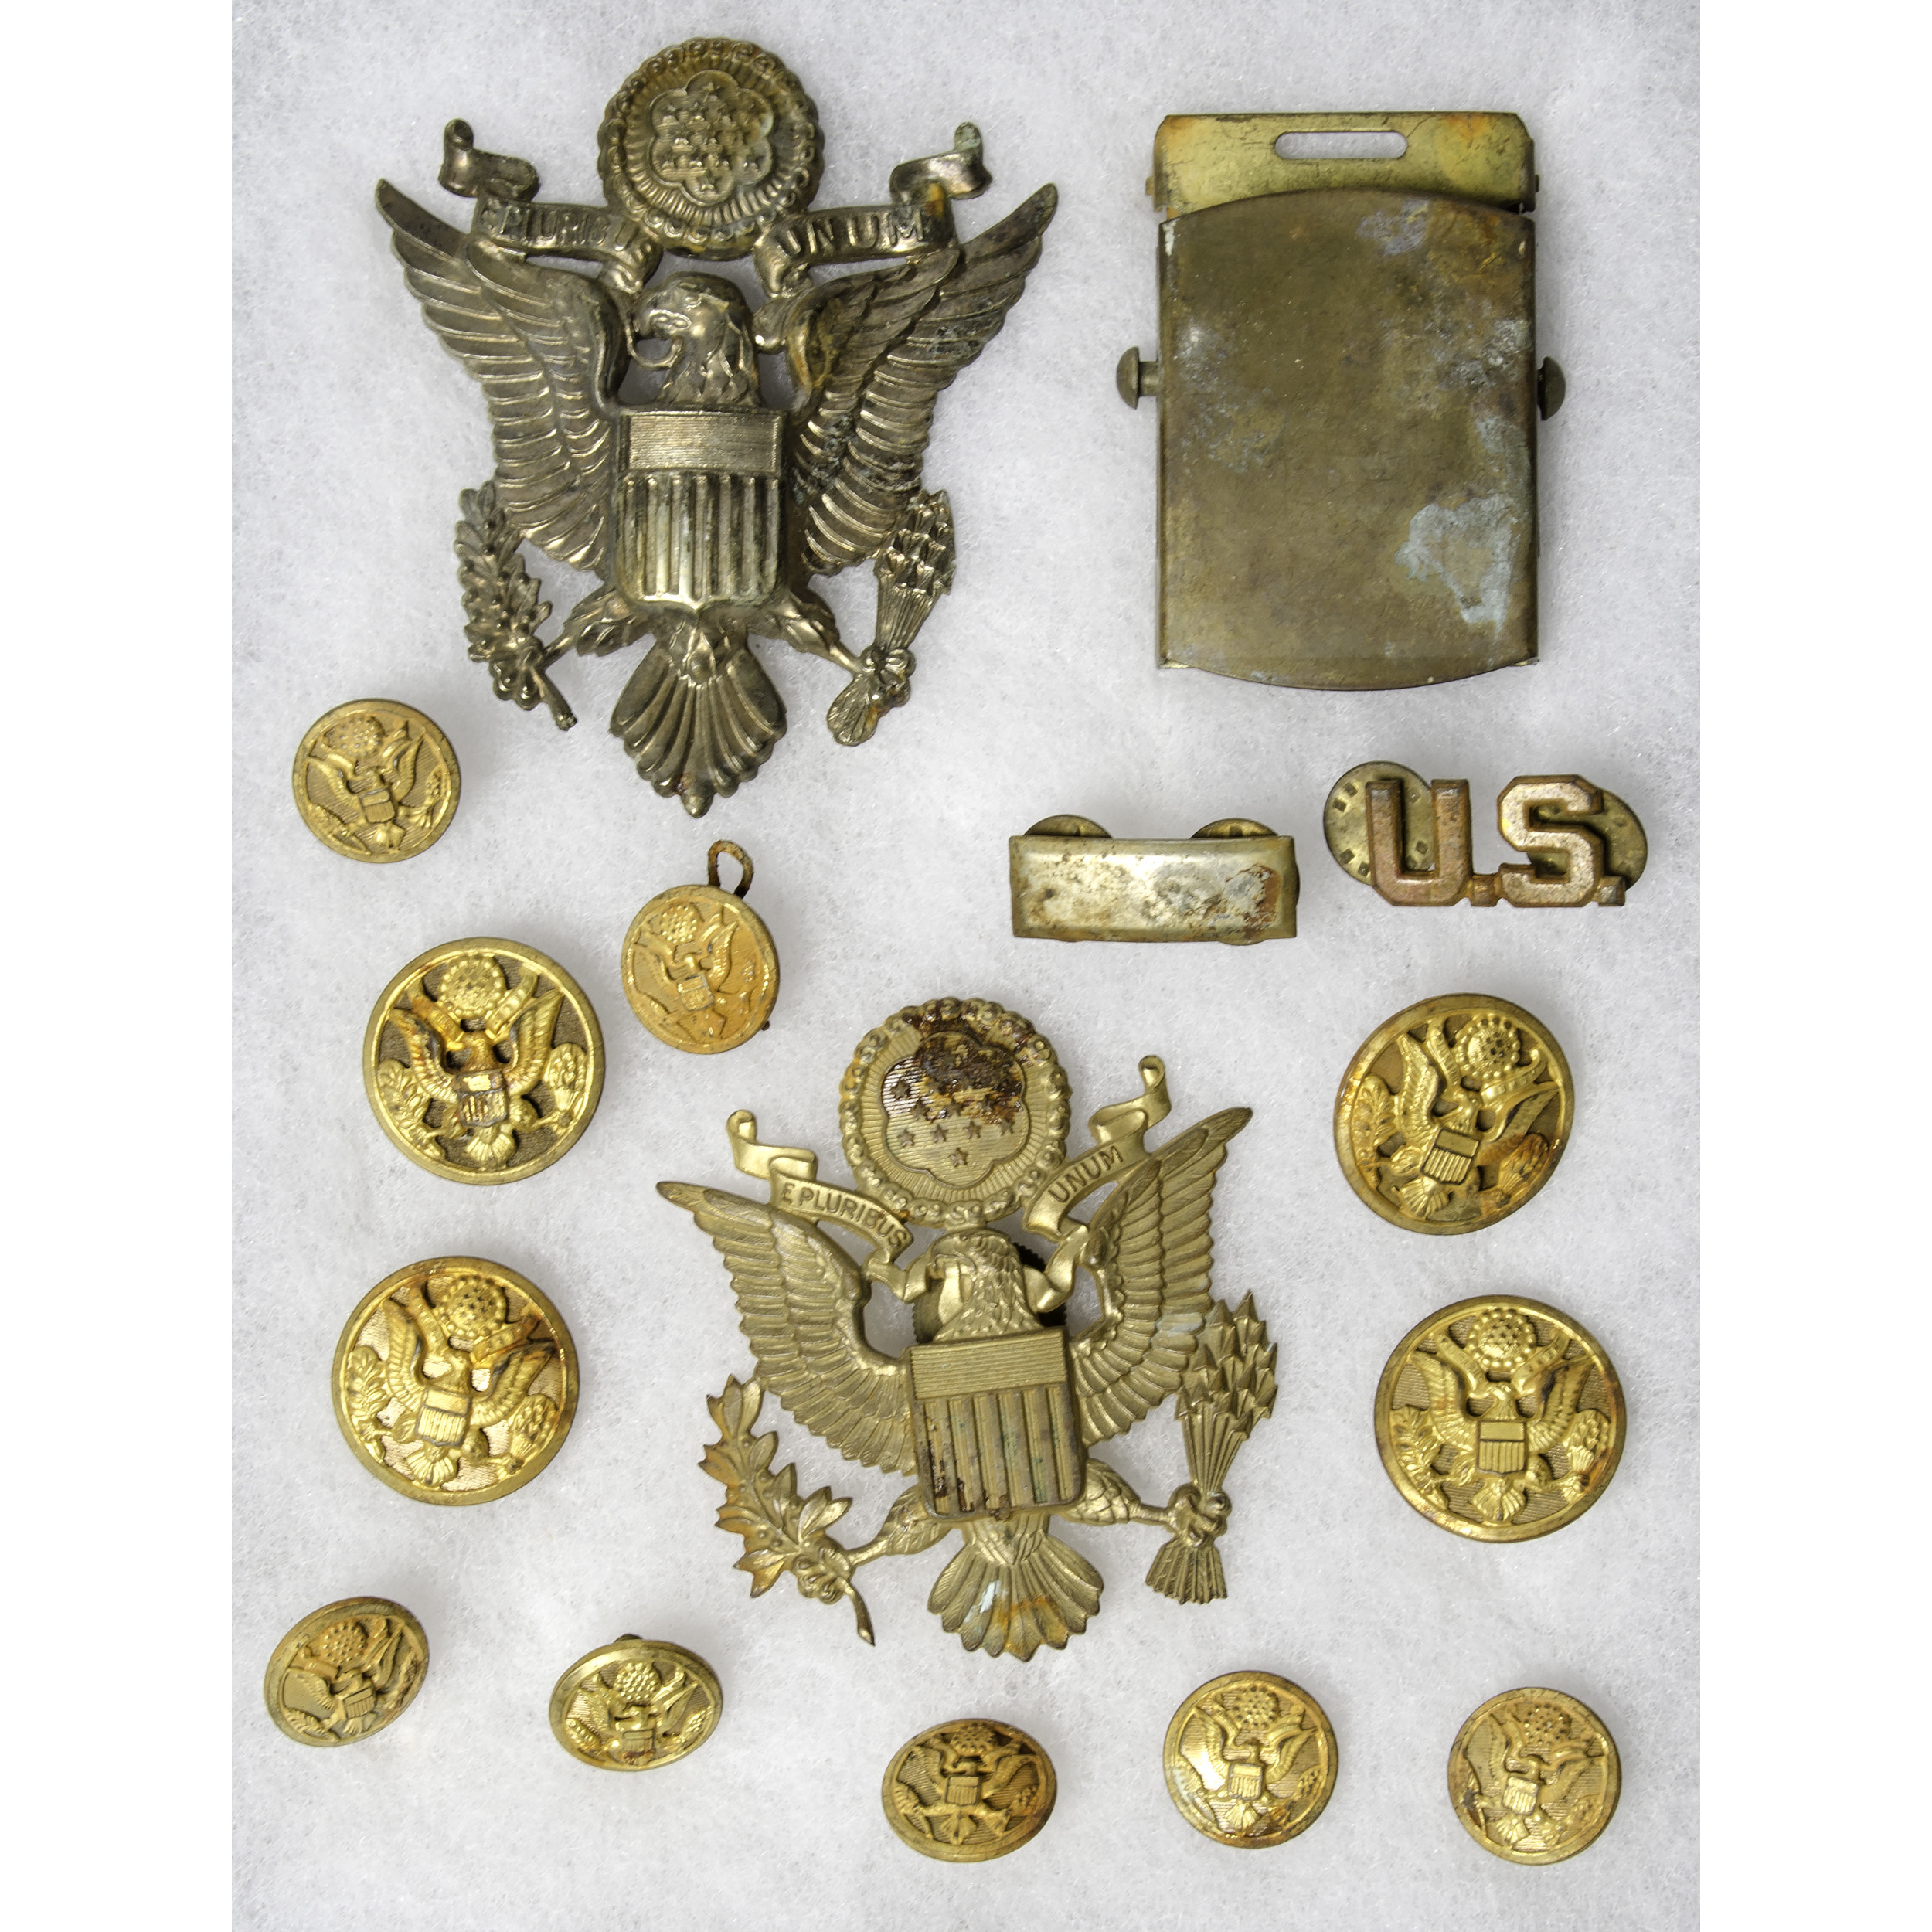 Riker Mount With WW II Hat Emblems And Buttons | Cowan's